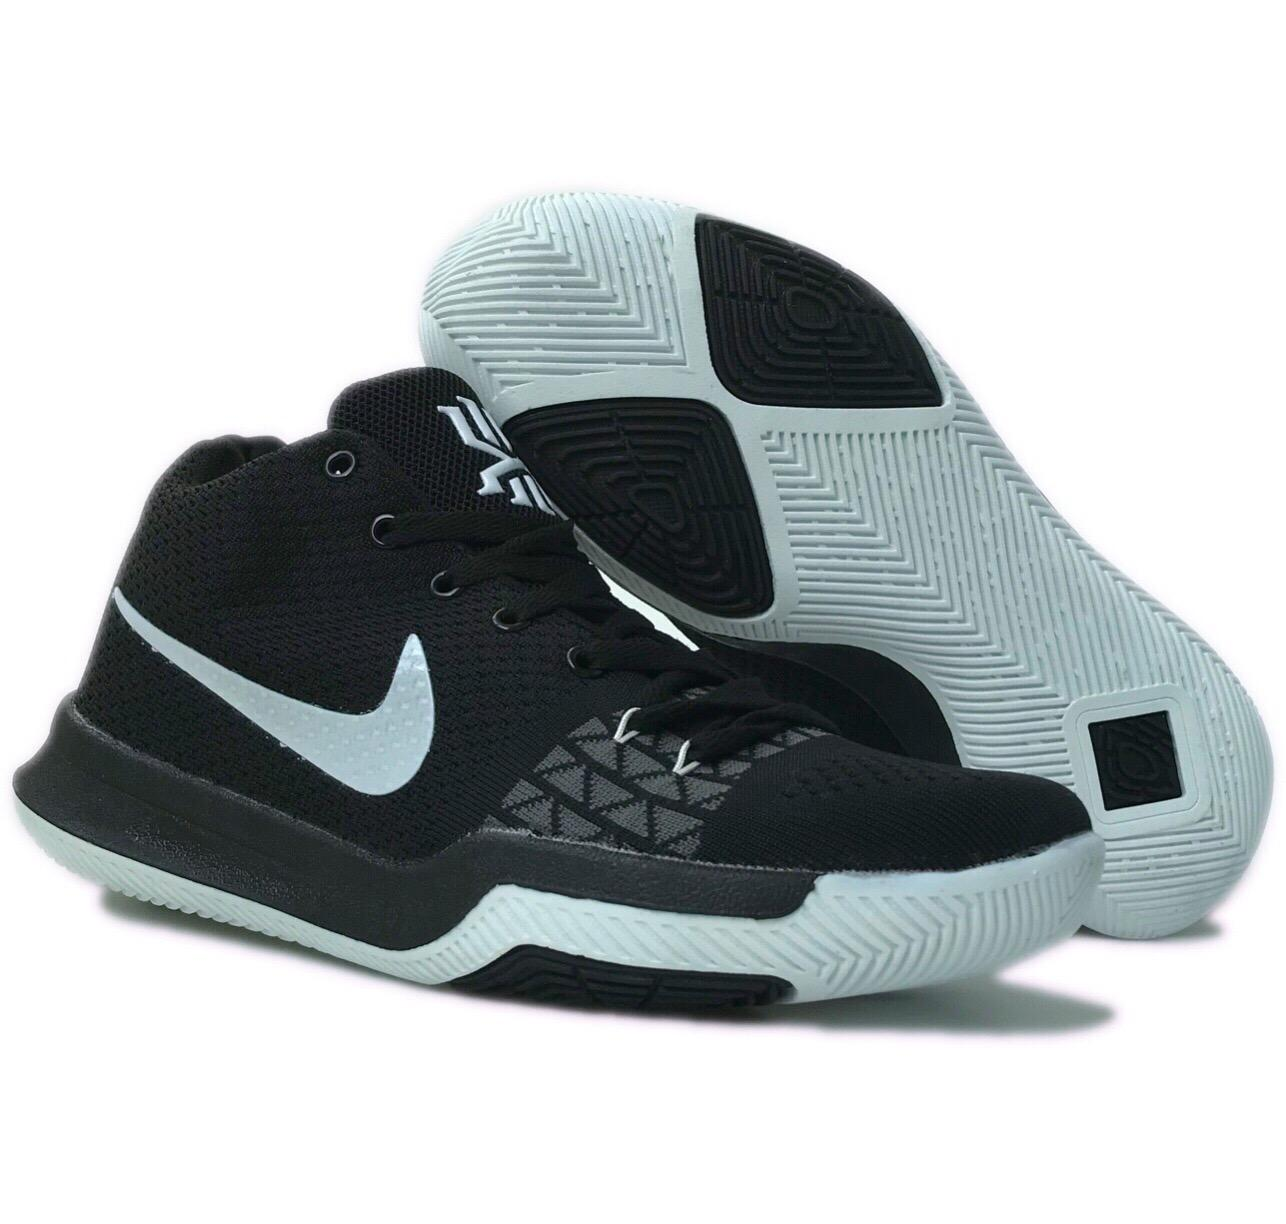 new product d8152 98ae7 Kyrie Irving 3 Basketball shoes for men sneakers Color Black White